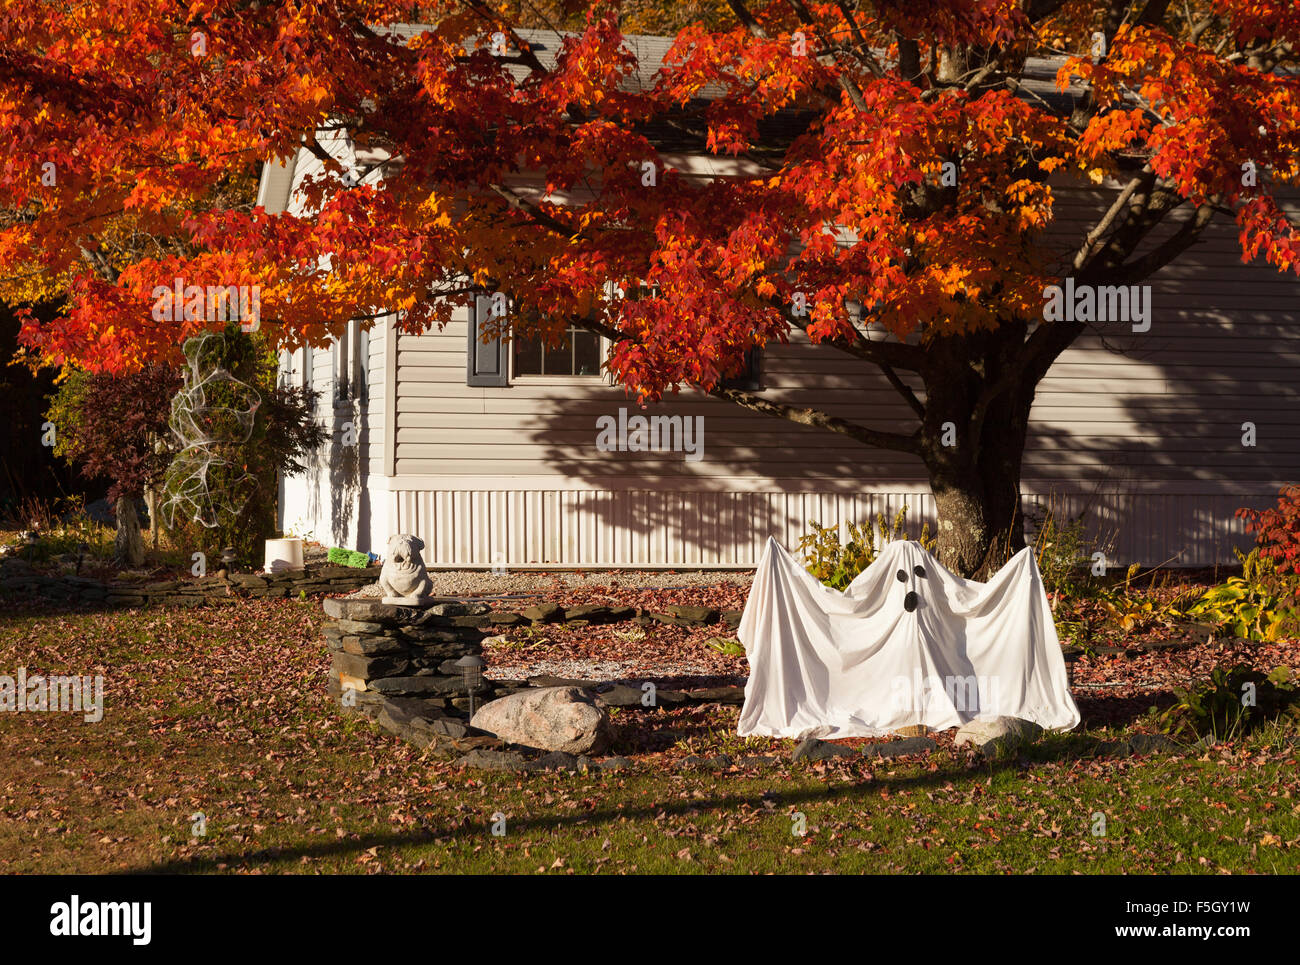 halloween decorations outside a house stowe vermont new england usa